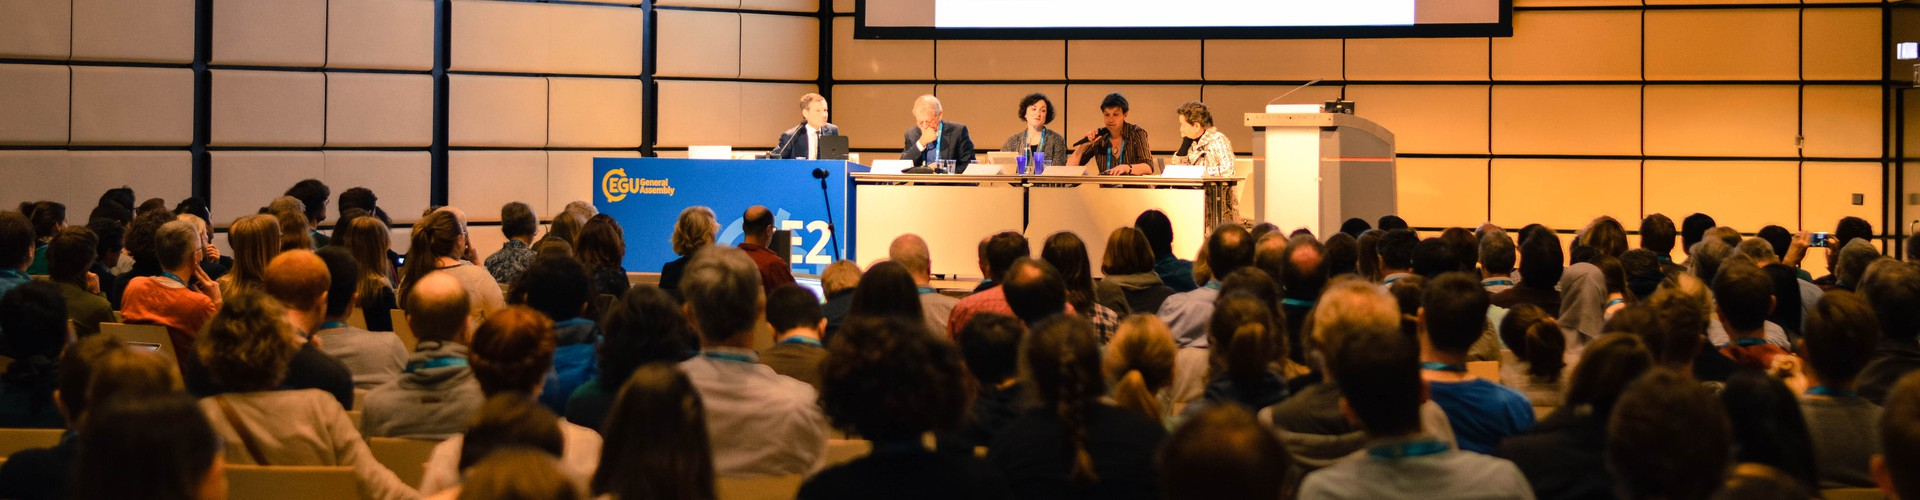 Scientists at a Union Symposium during the EGU 2017 General Assembly (Credit: Kai Boggild/EGU)